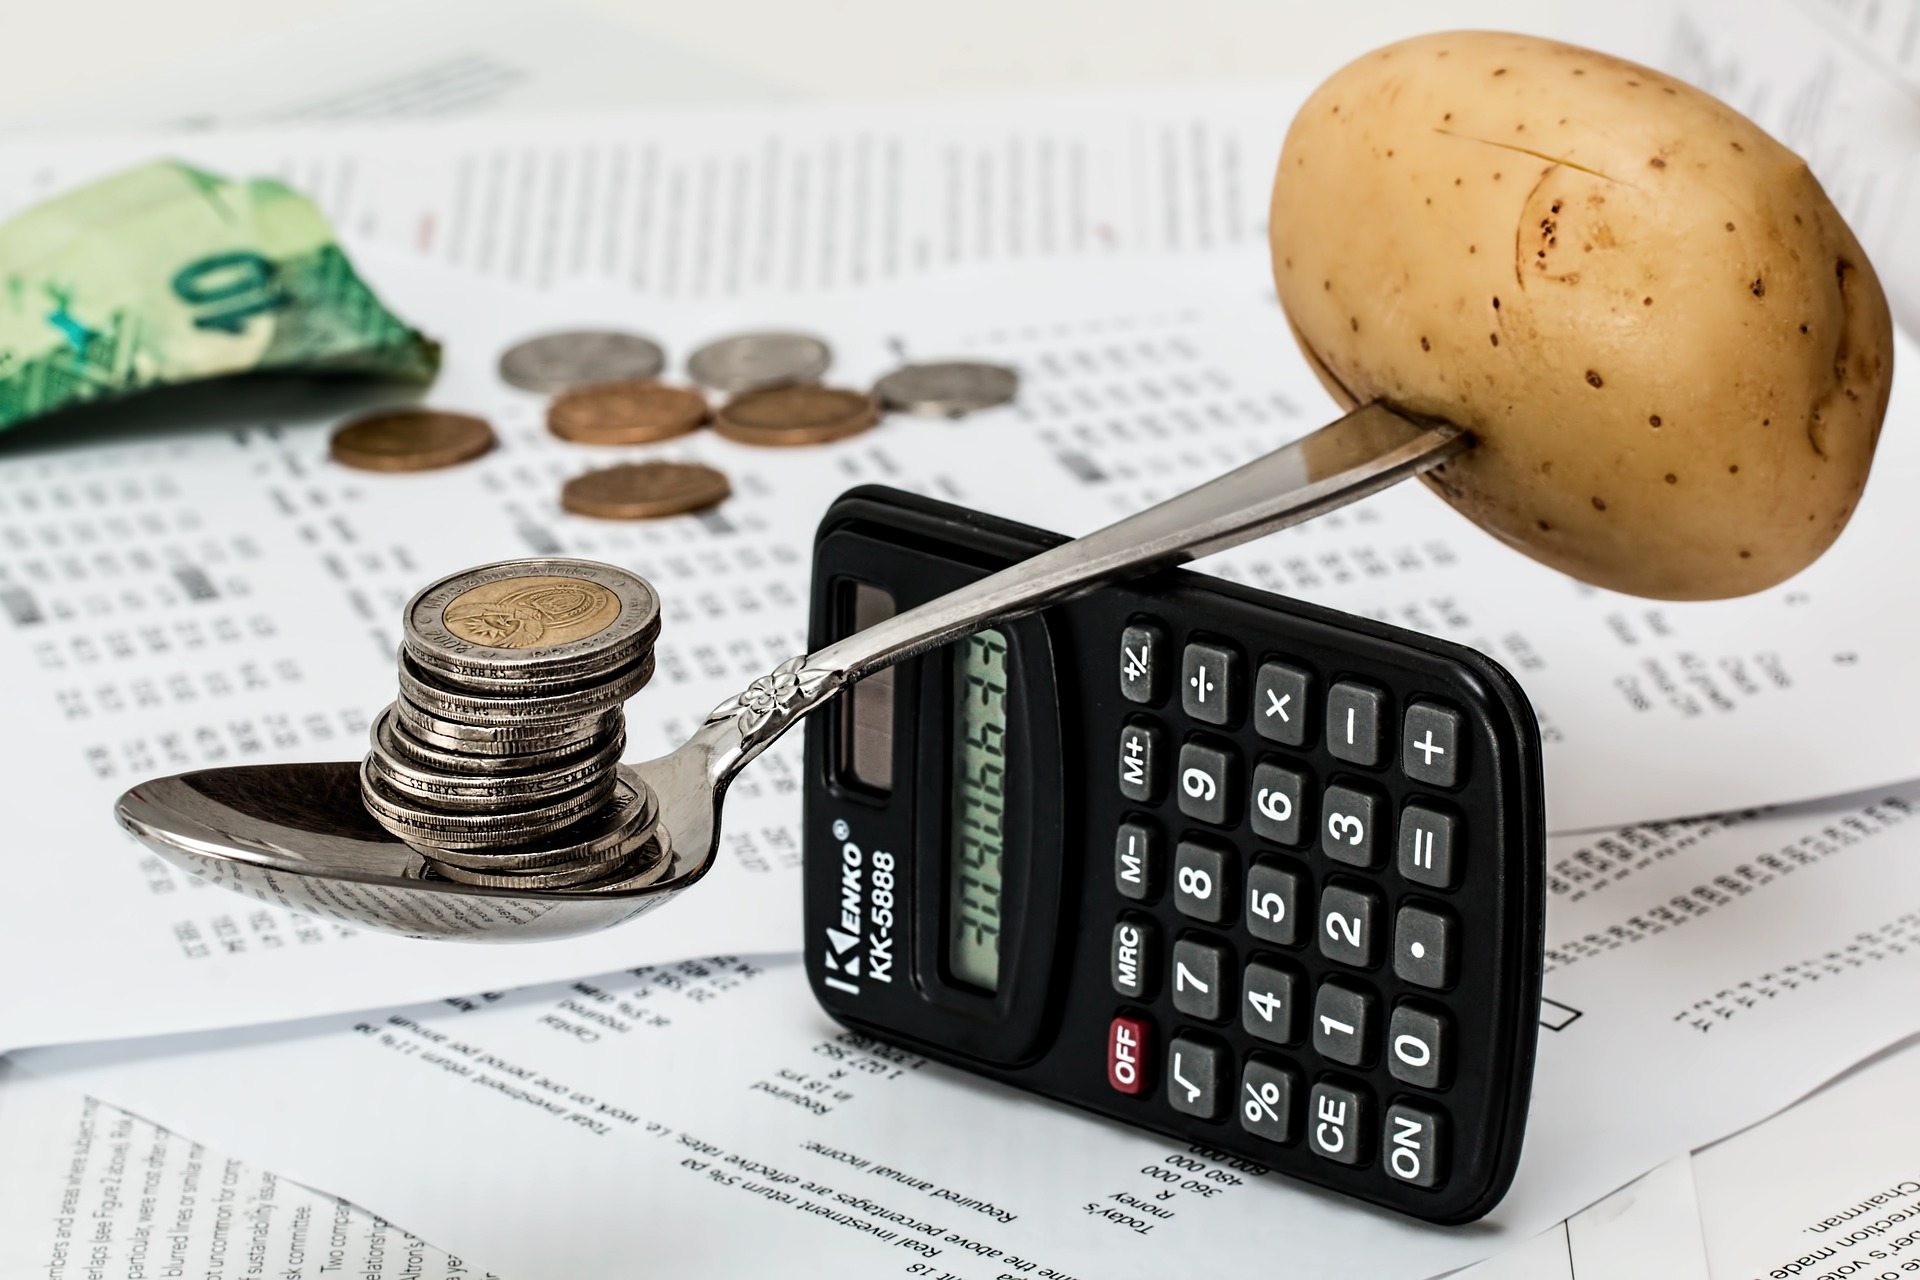 Coins and potatoes balanced on a spoon and calculator